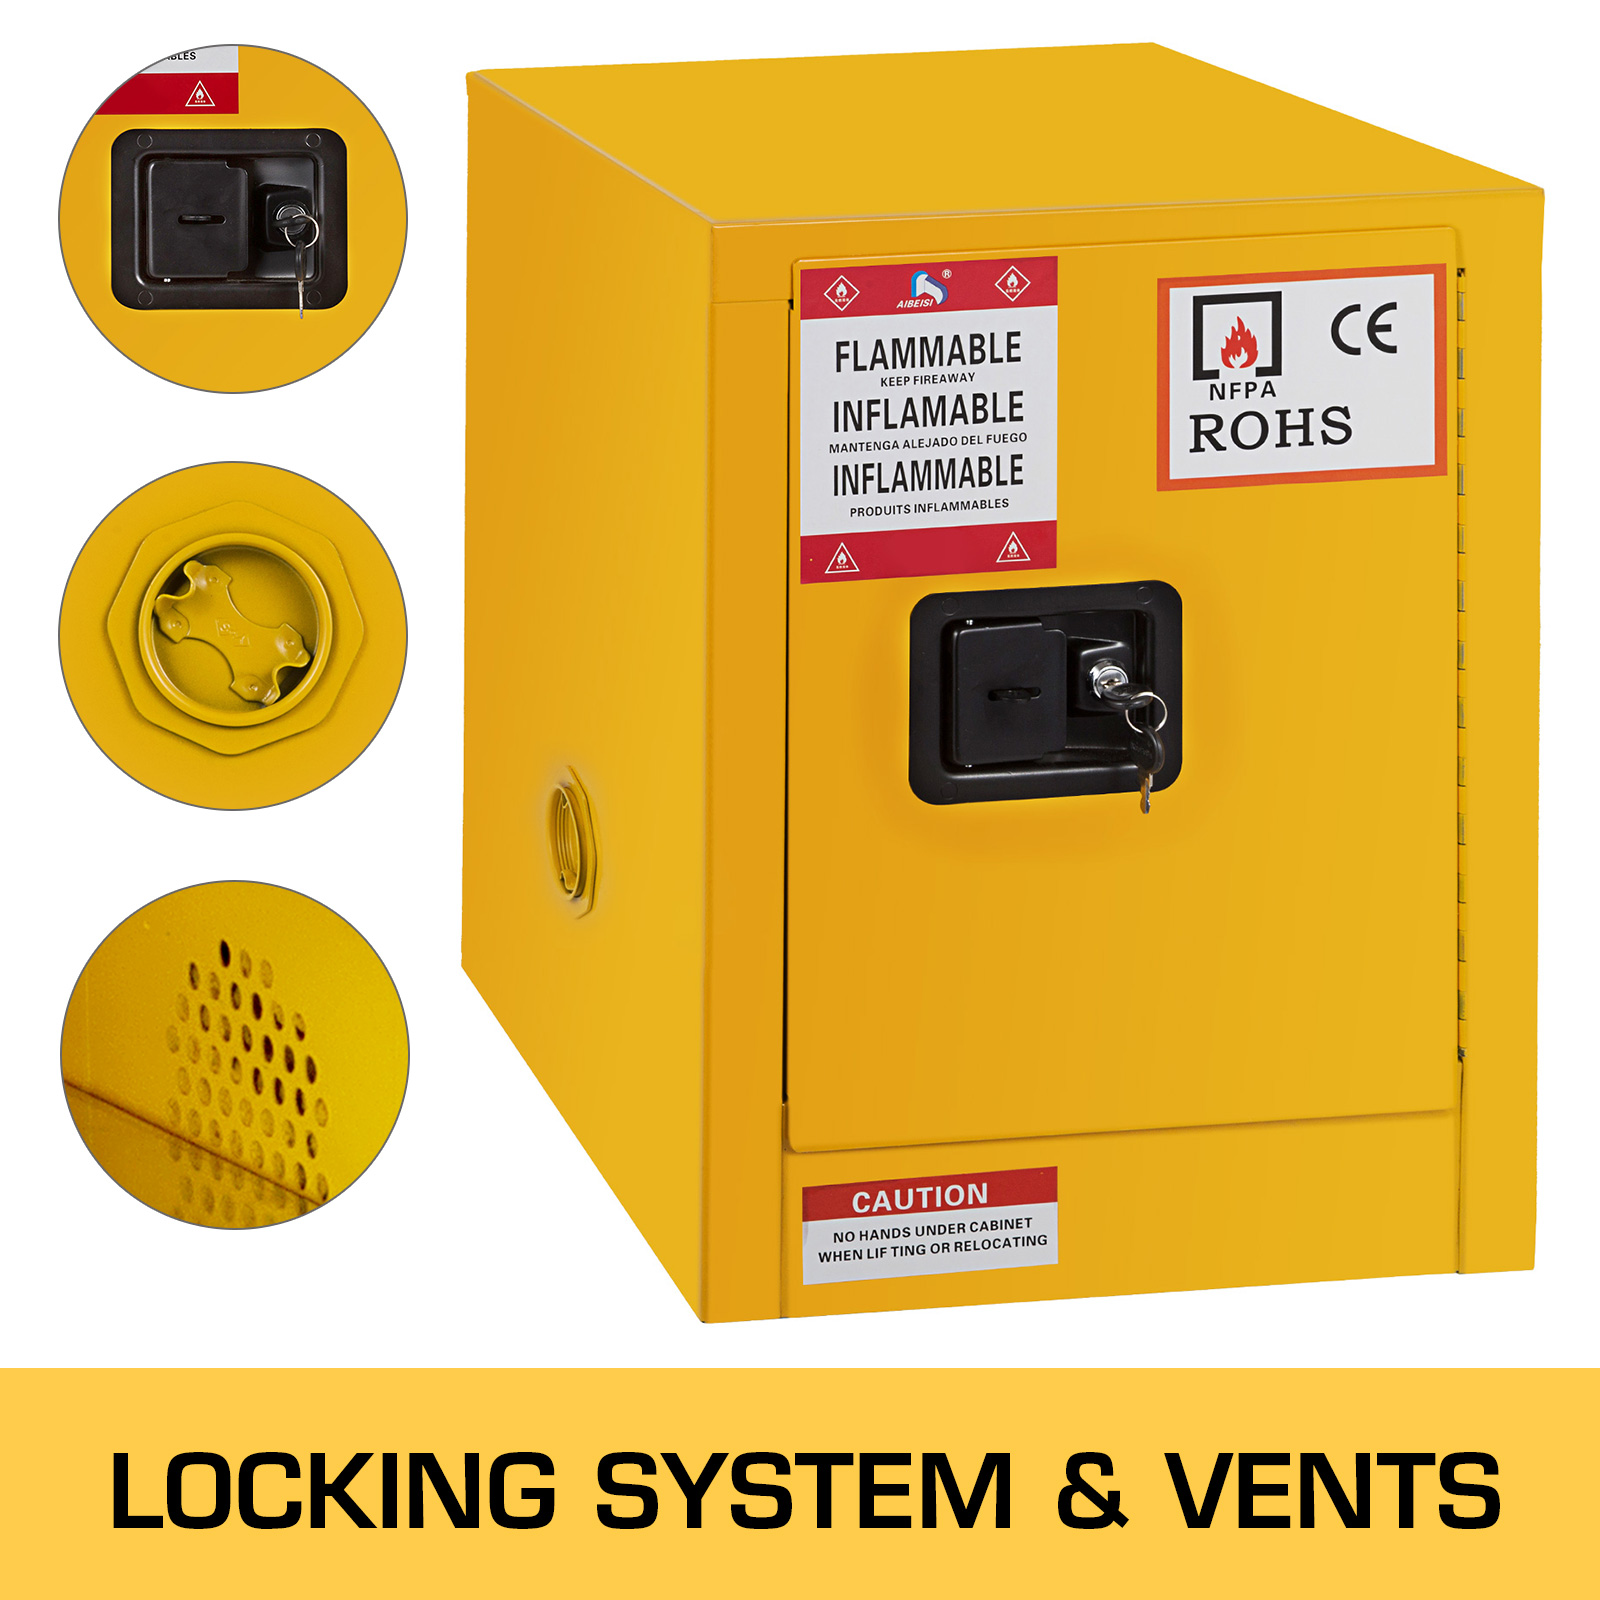 Details About 12 Gal Capacity Safety Storage Cabinet For Flammable Liquids 1 Manual Doors